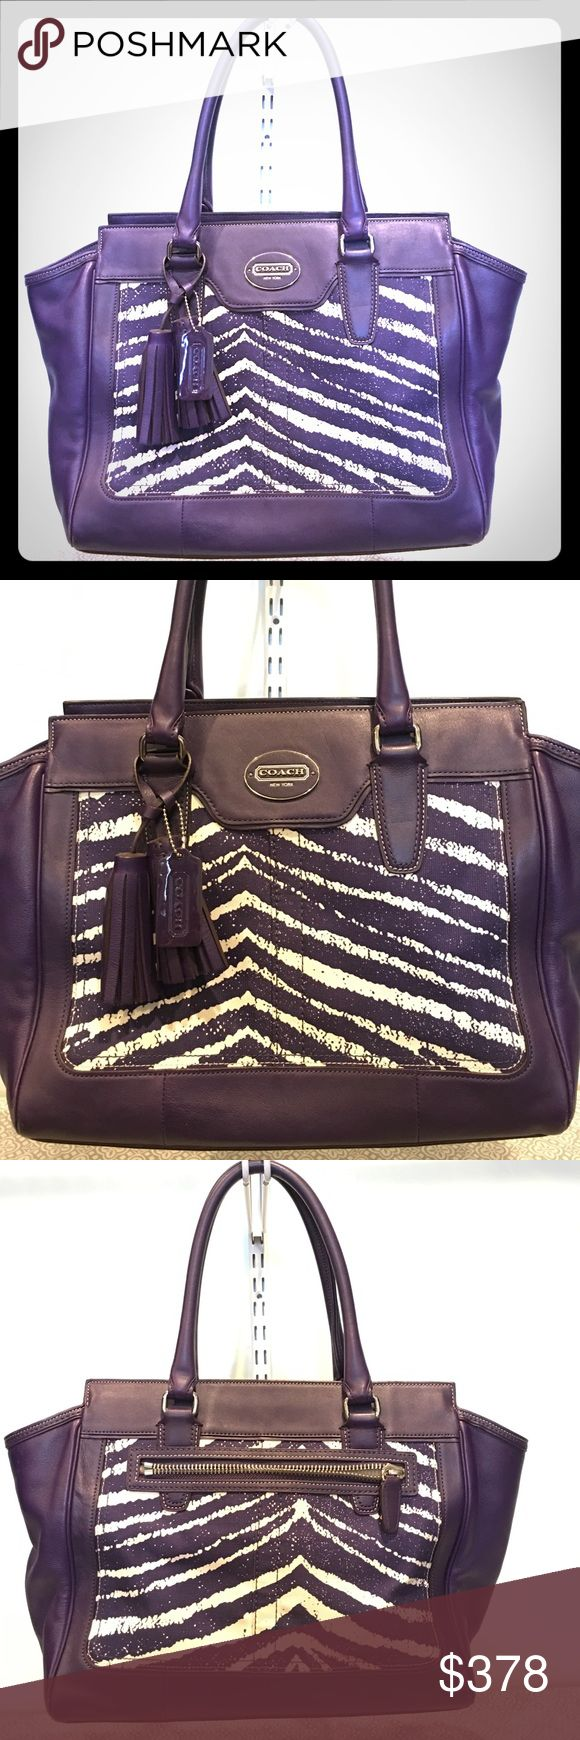 COACH LEGACY ZEBRA PRINT MED CARRYALL BAG #23409 COACH LEGACY ZEBRA PRINT MEDIUM CARRYALL/ SHOULDER BAG #23409 purple white approximate (L) 16 x (H) 11 x (W) 4 inches some marks on inside fabric Coach Bags Shoulder Bags